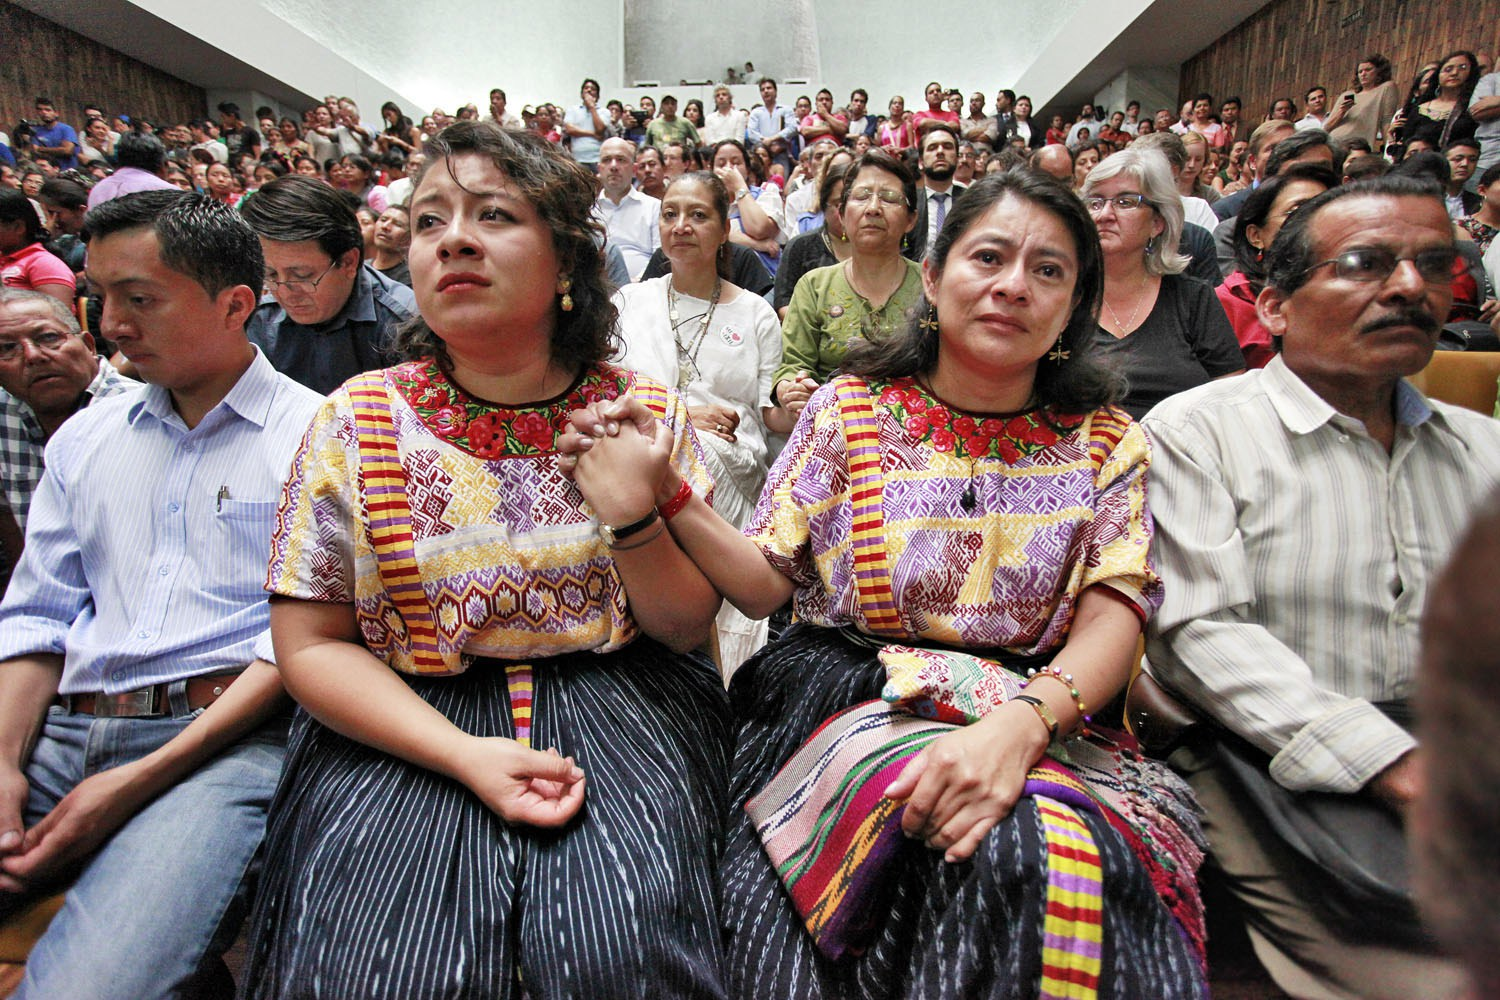 Documentary film 500 Years traces the genocide of Mayan people in Guatemala